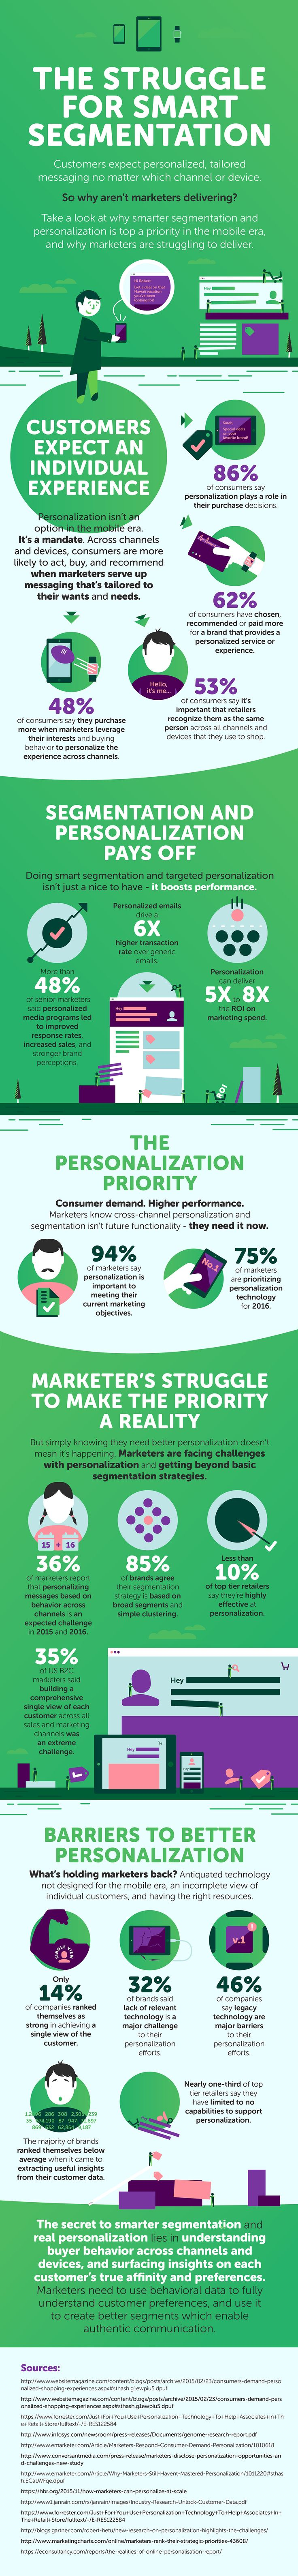 [Infographic] The Personalization Struggle in Hotel Marketing